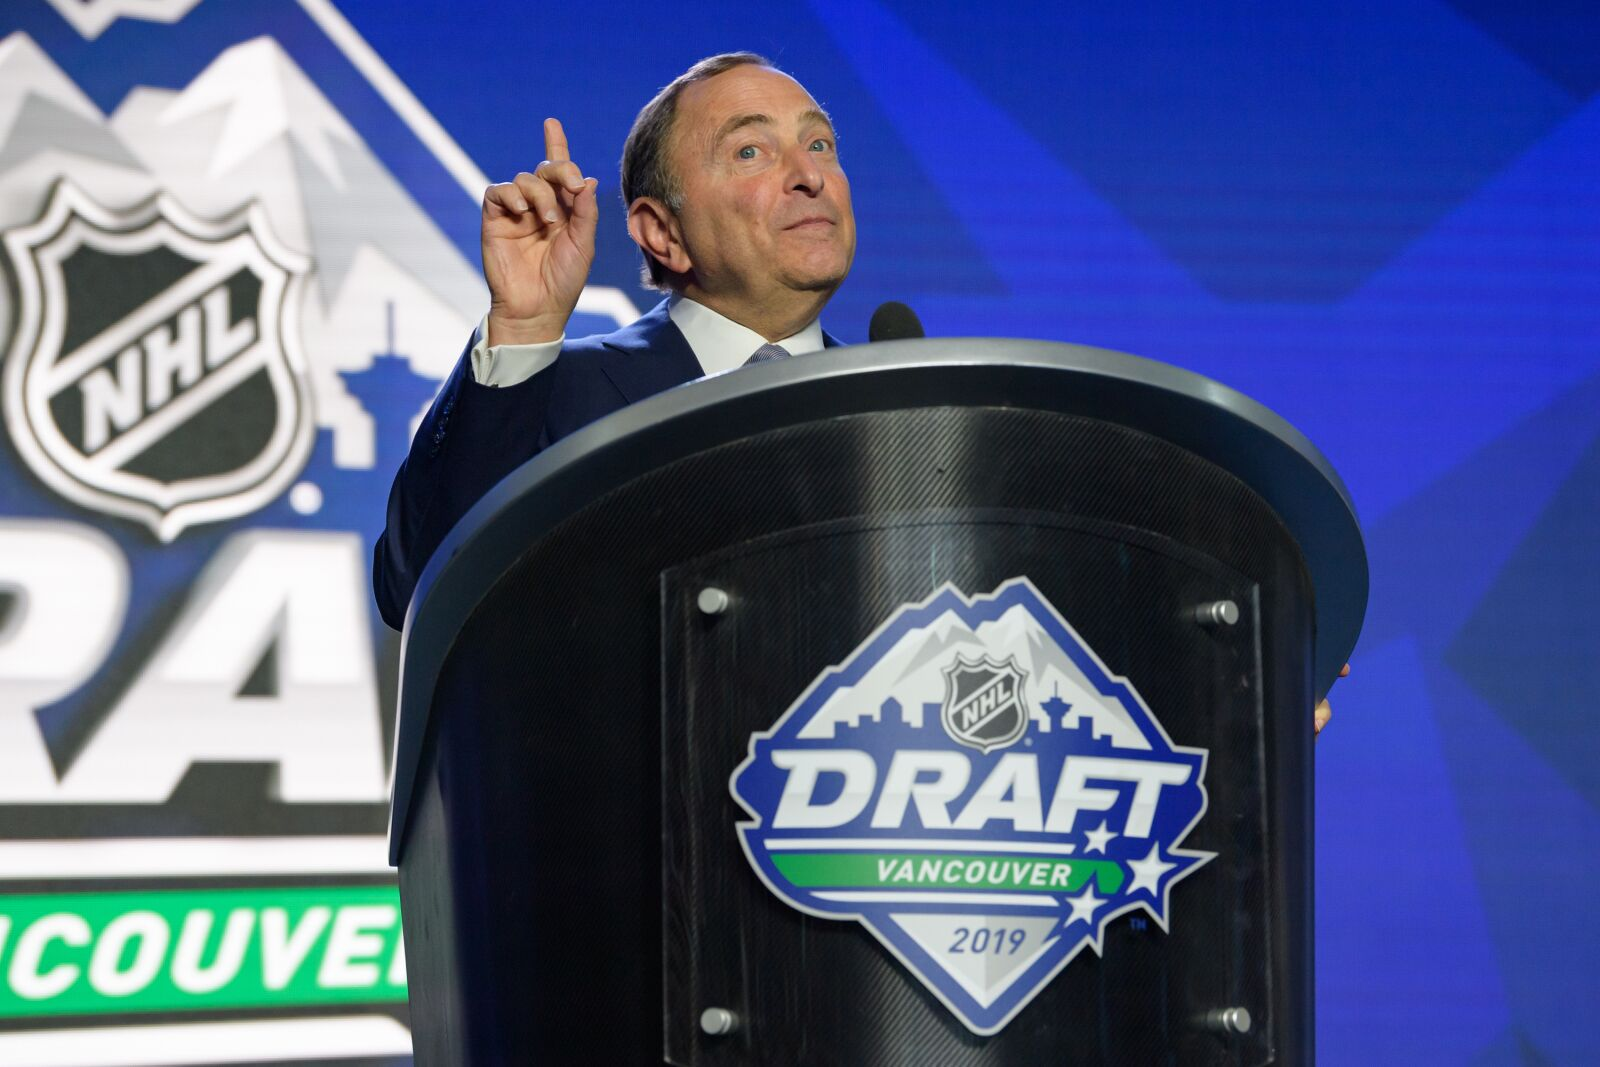 New York Rangers: The future of the NHL will be determined off the ice